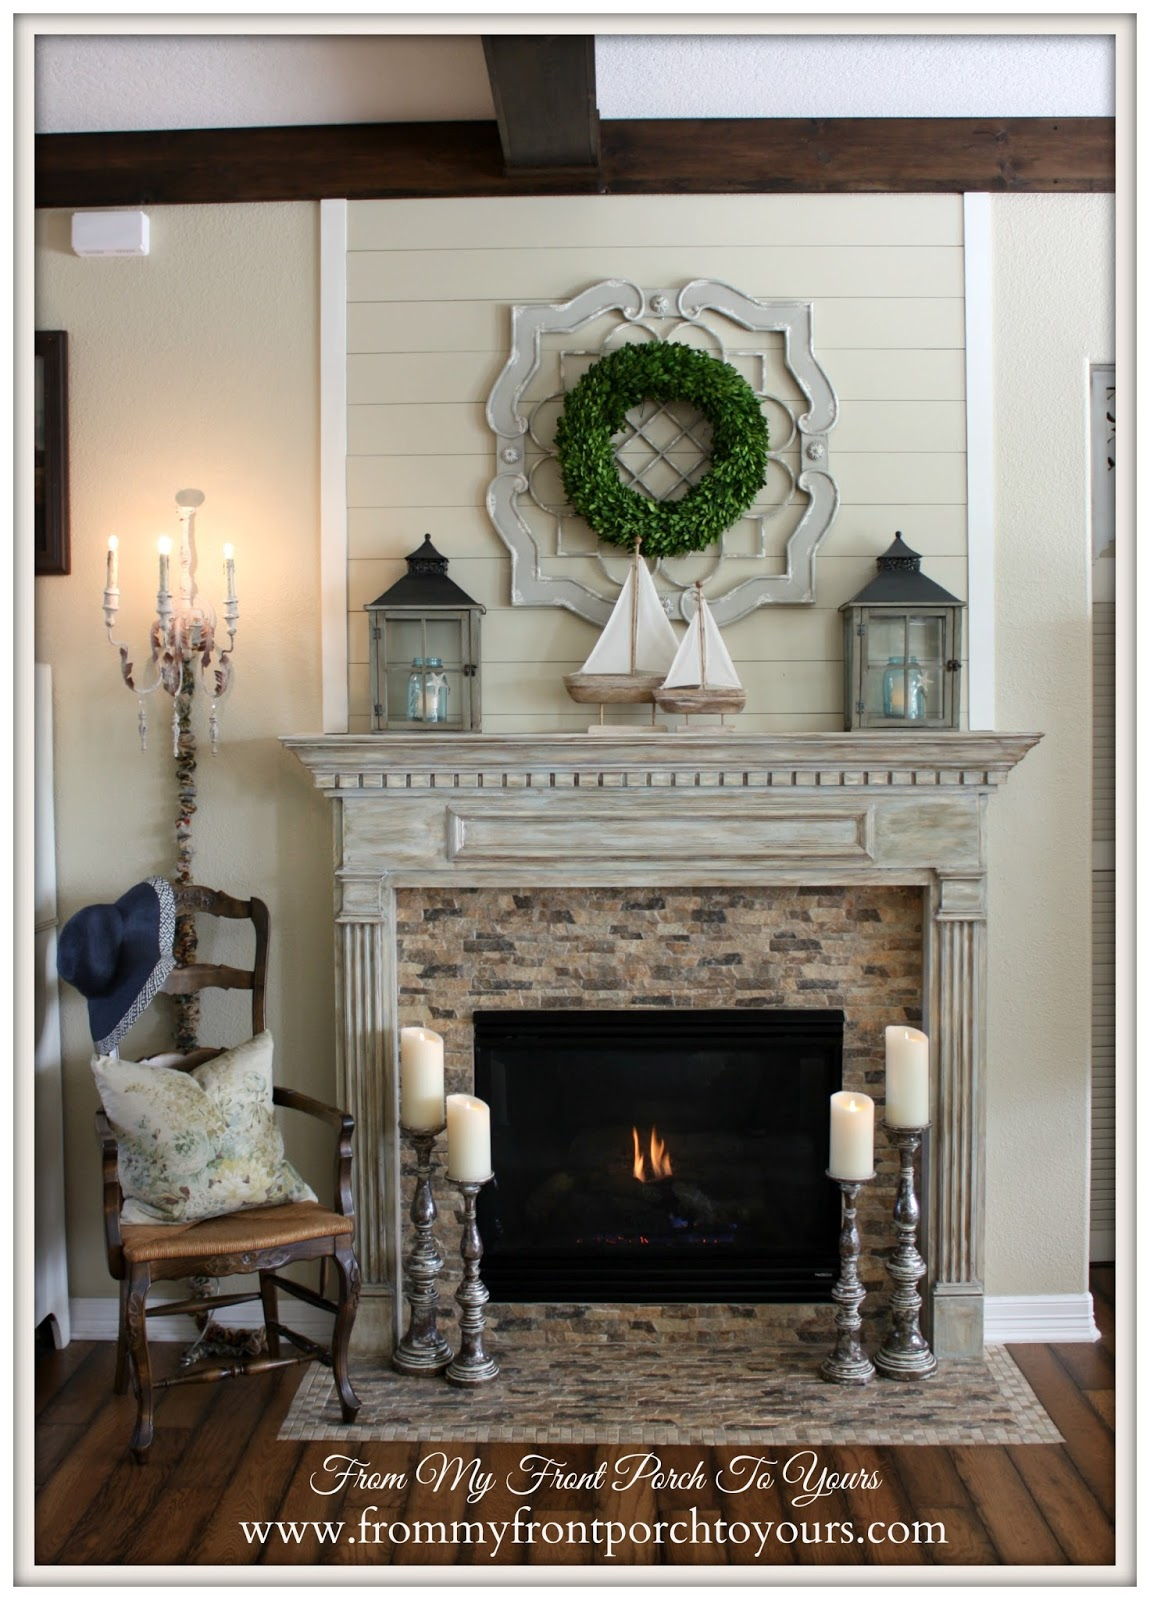 Farmhouse Rustic Fireplace Mantel Decor From My Front Porch To Yours Simple Nautical Summer Mantel